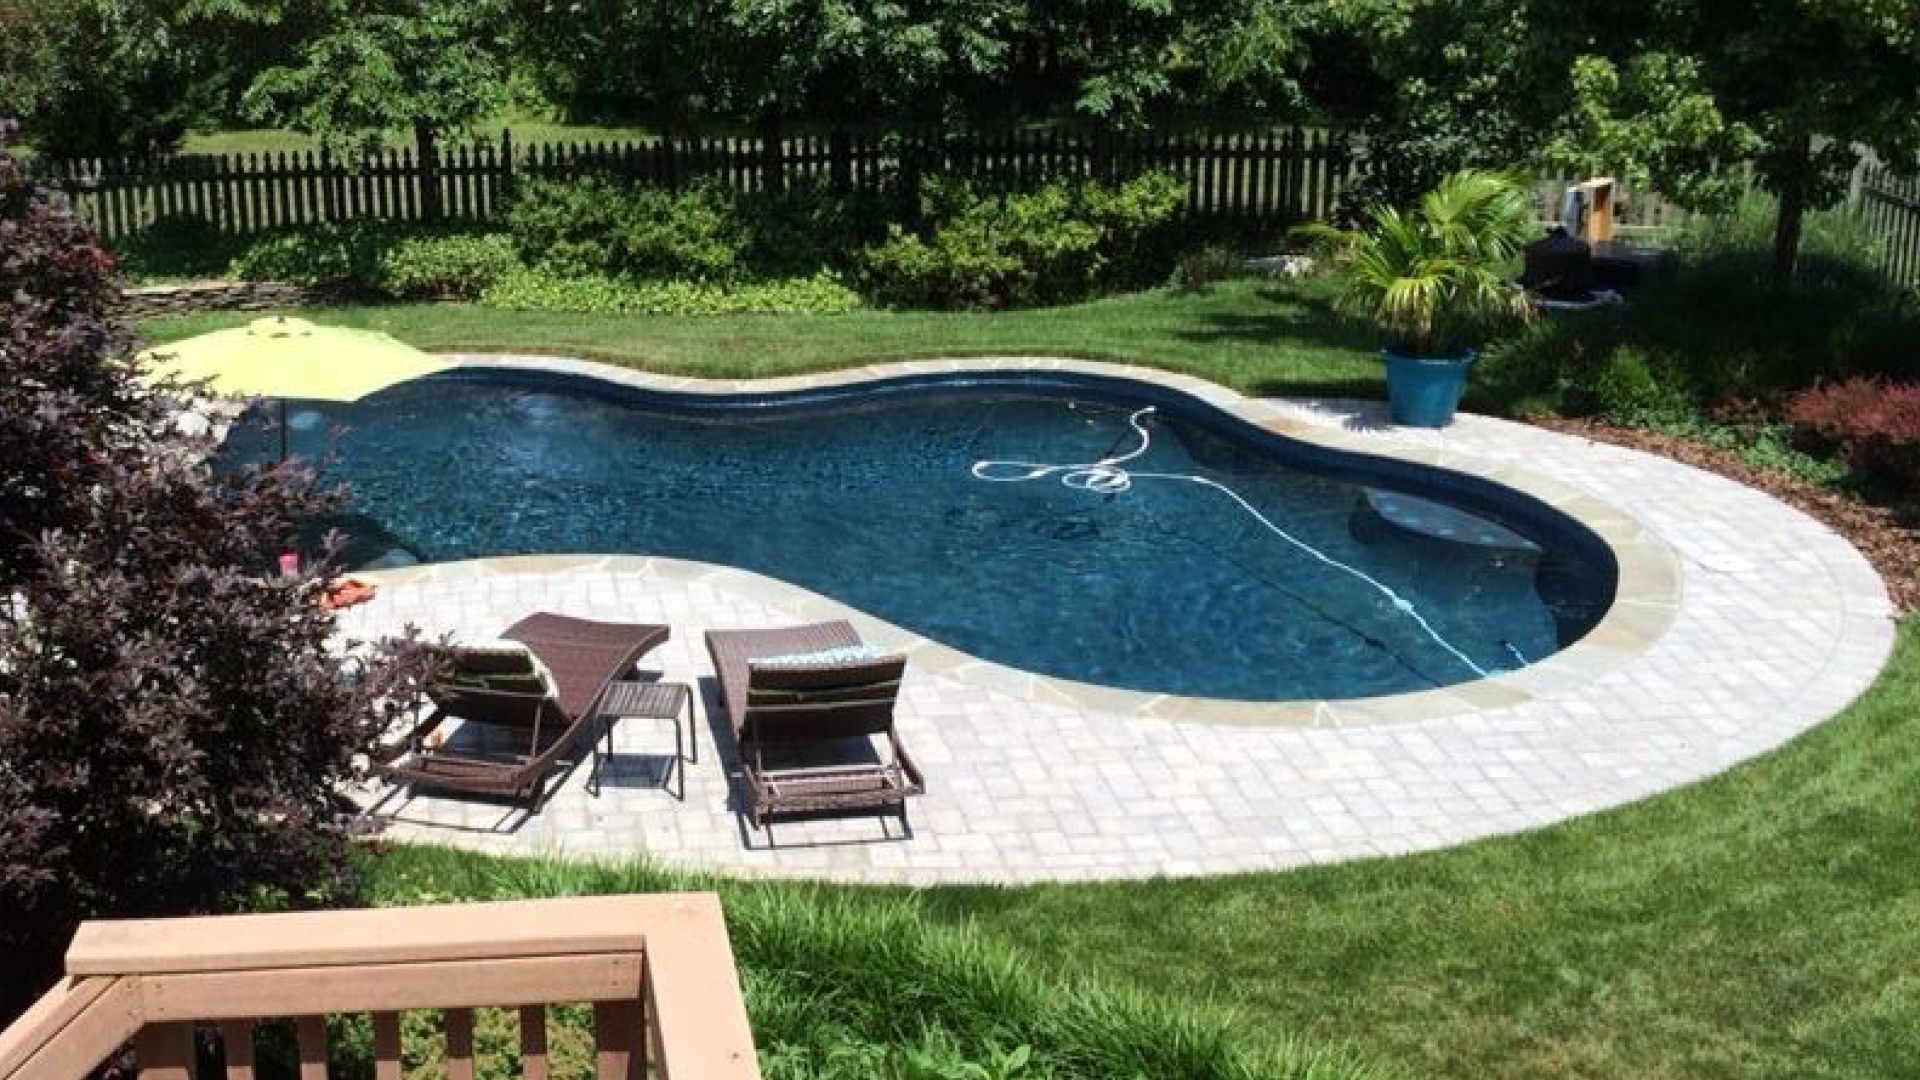 Pool builder in northern virginia and maryland for Pool design northern virginia